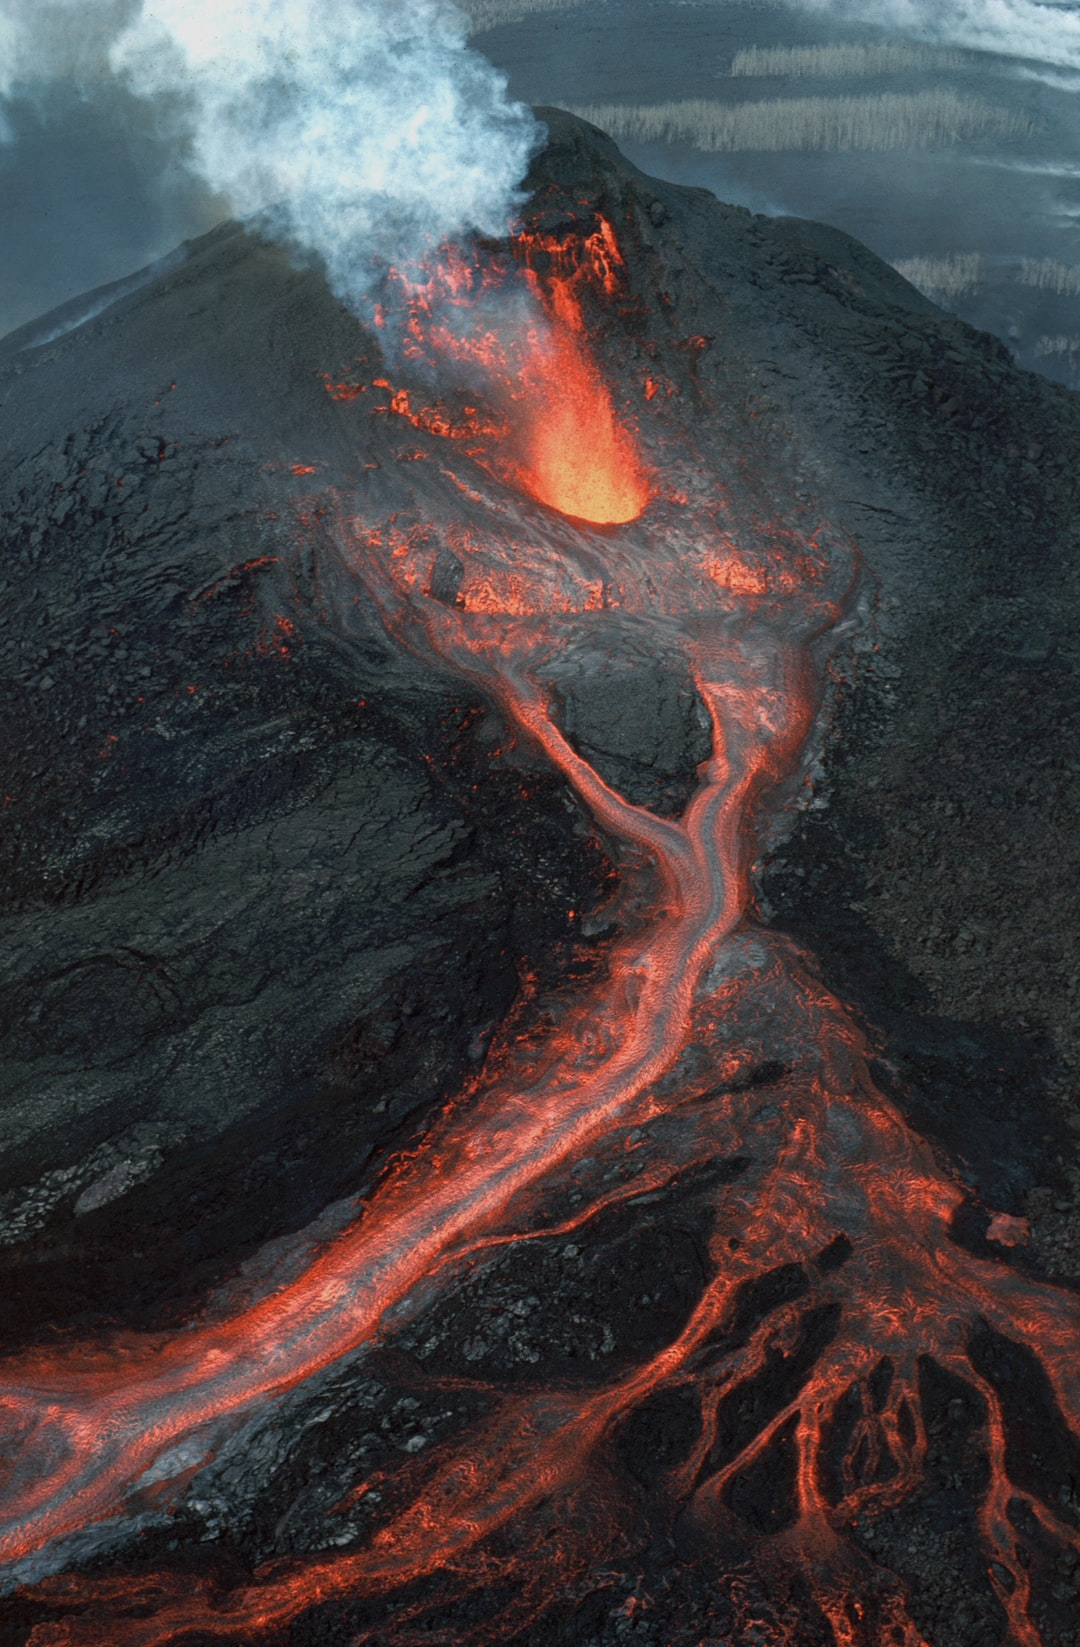 Aerial view, from the east, of waning lava fountain from Pu'u 'O'o on Hawai'i Island's Kilauea Volcano. Taken at the end of eruption episode 32. Pu'u 'O'o rose 209 meters above the pre-1983 surface (928 meters above sea level).